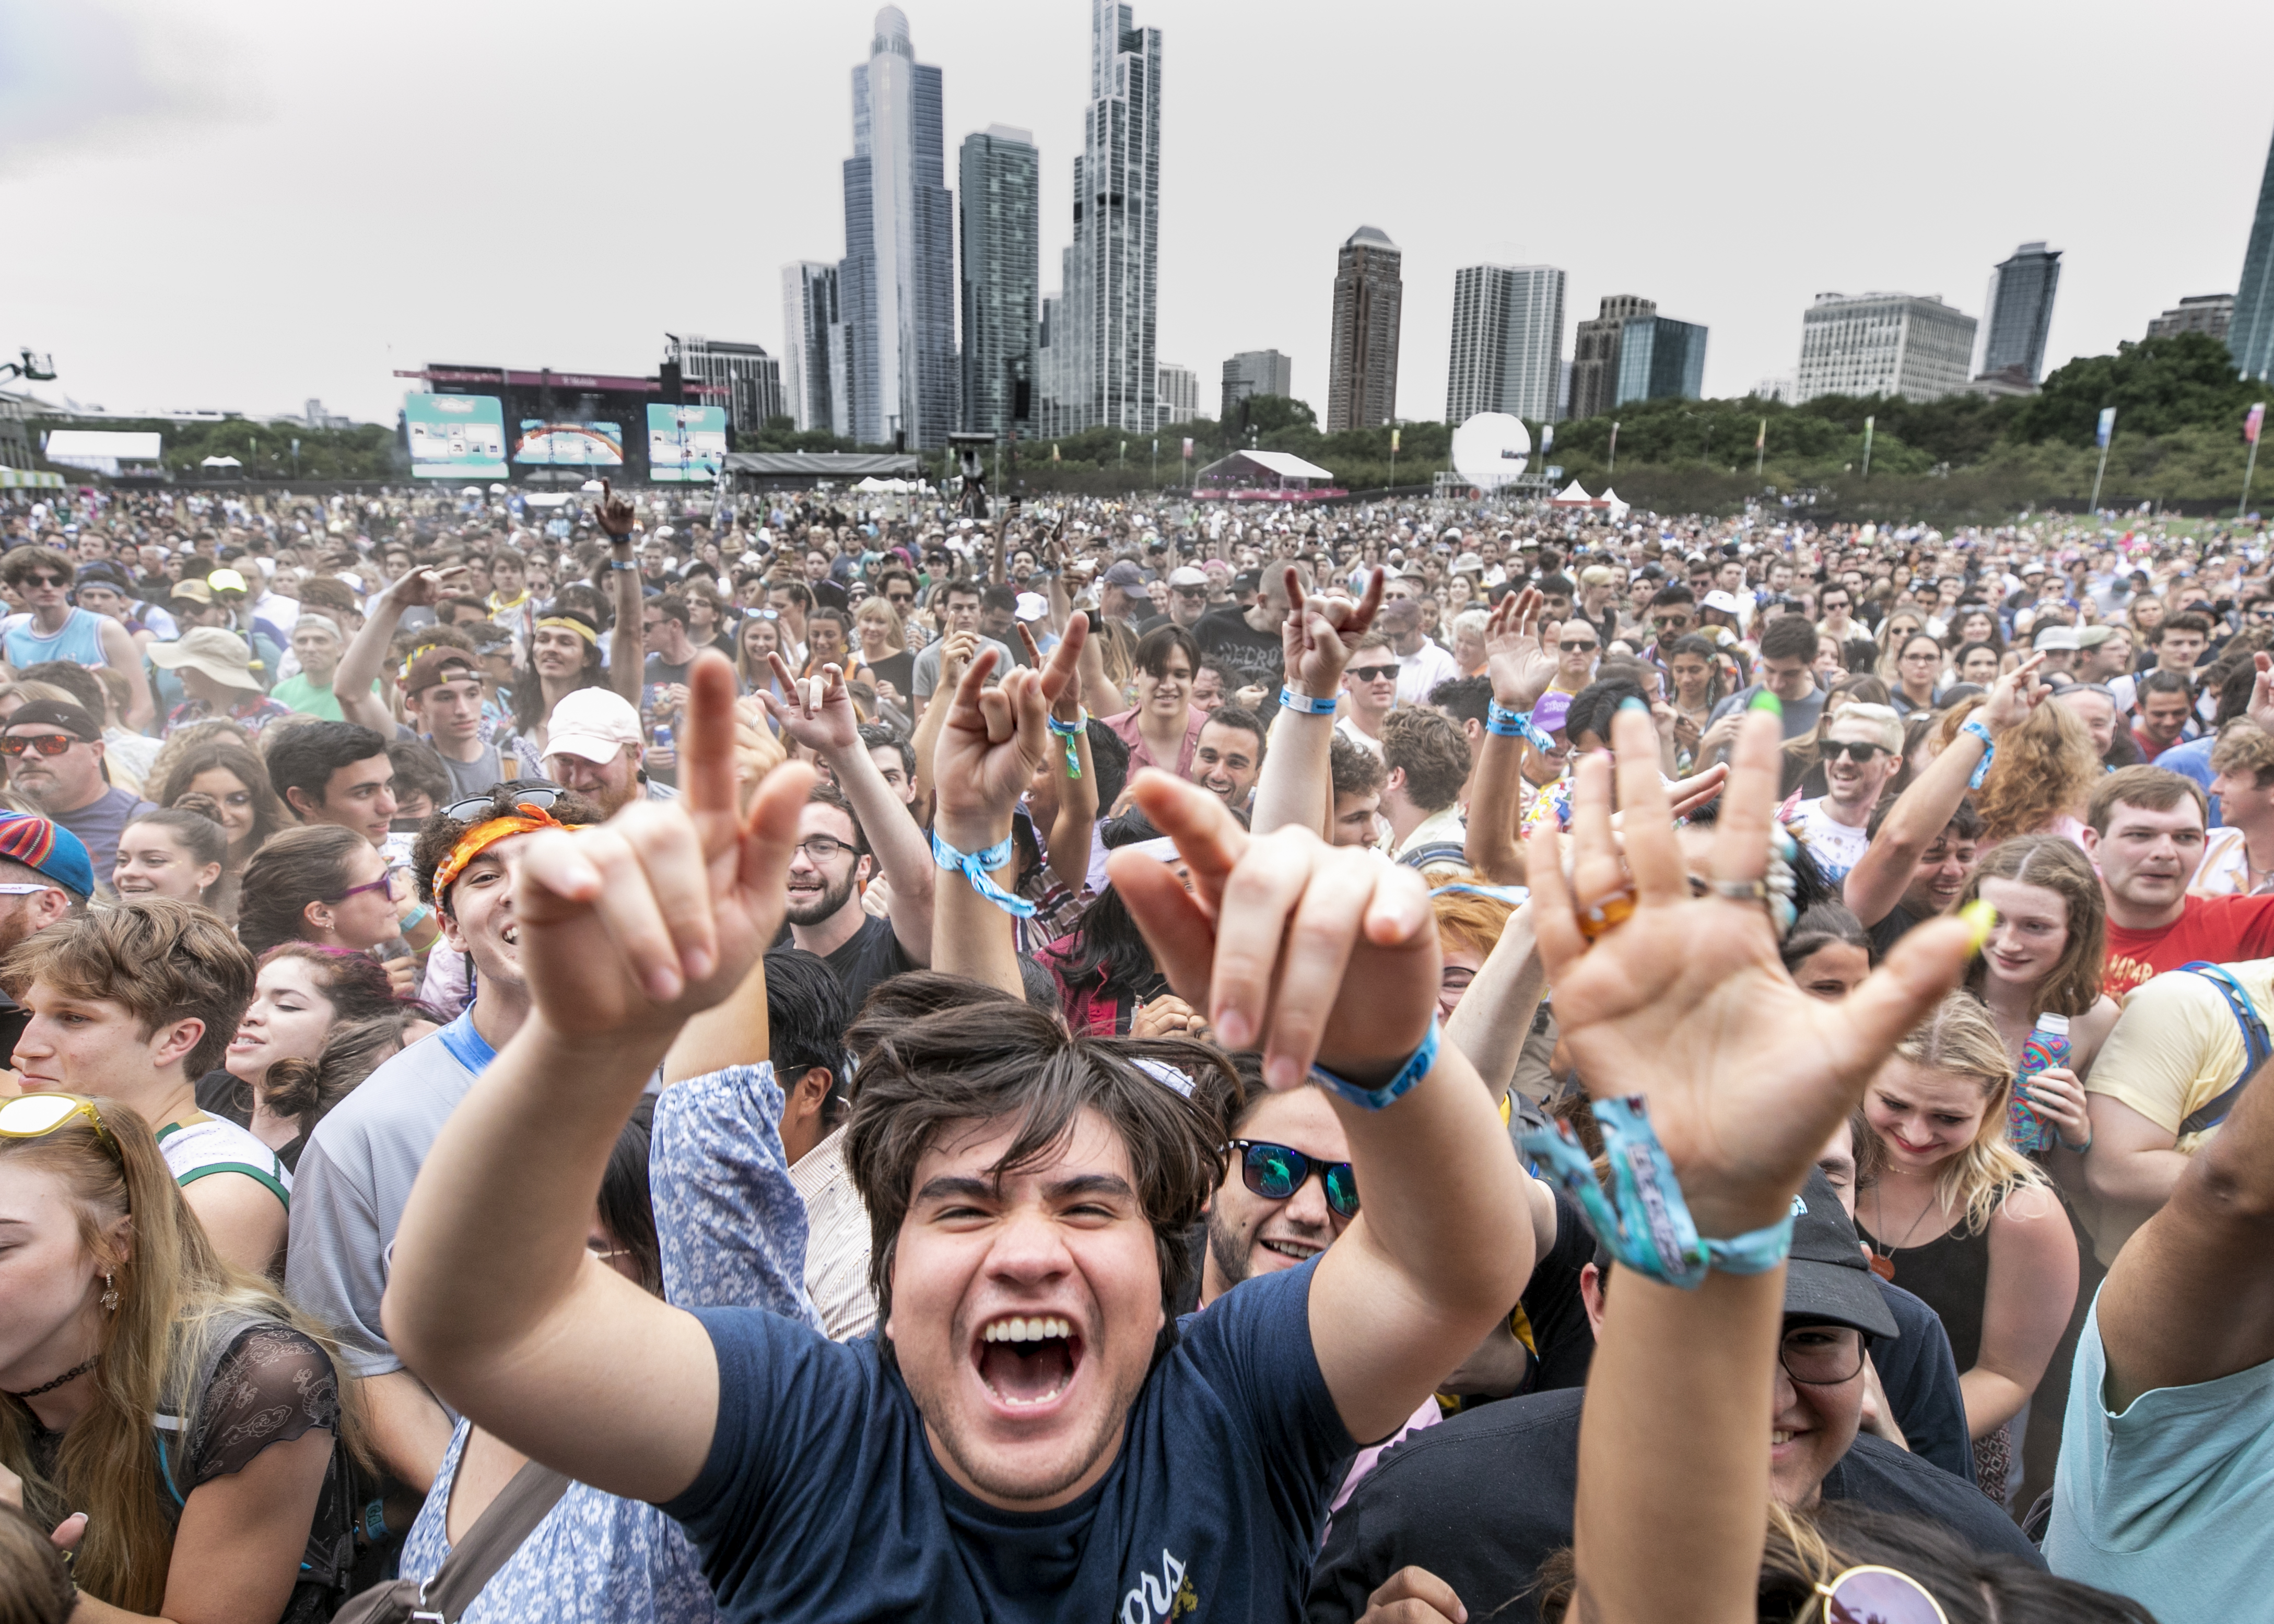 Festivalgoers attend day 2 of Lollapalooza at Grant Park in Chicago, on July 30, 2021.